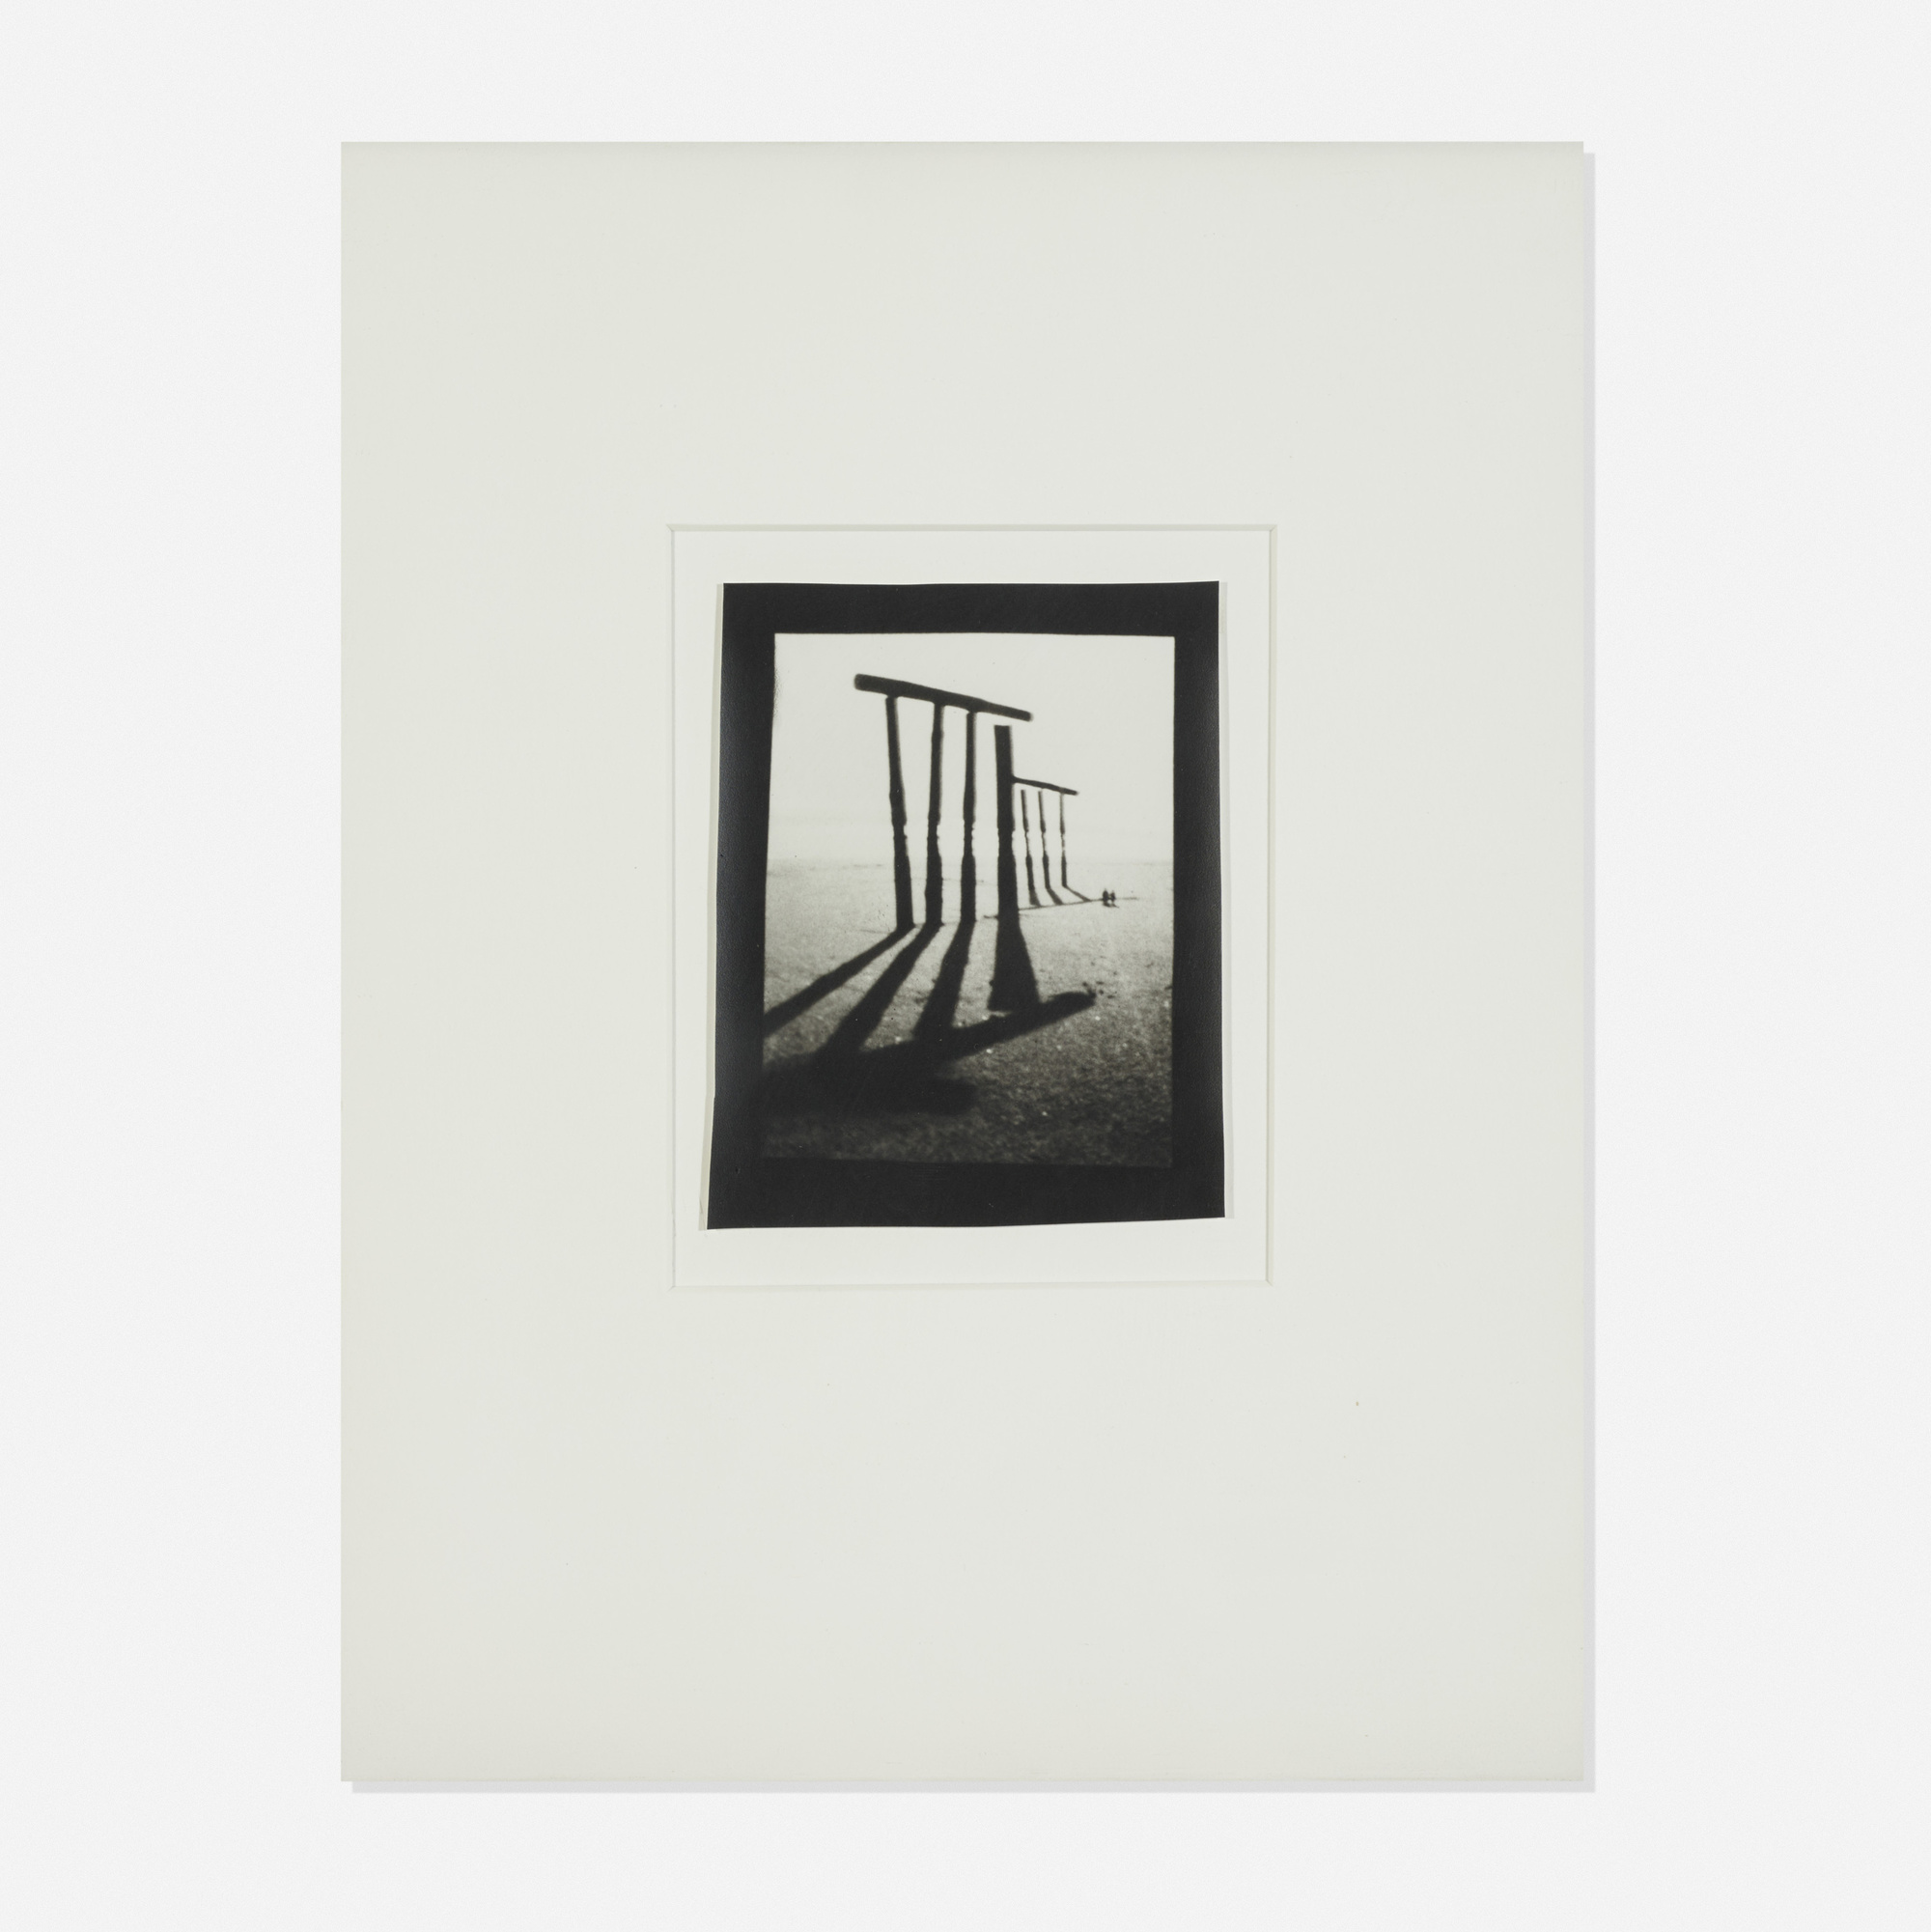 752: Ruth Thorne-Thomsen / California no. 7 (from the Expeditions series) (1 of 1)